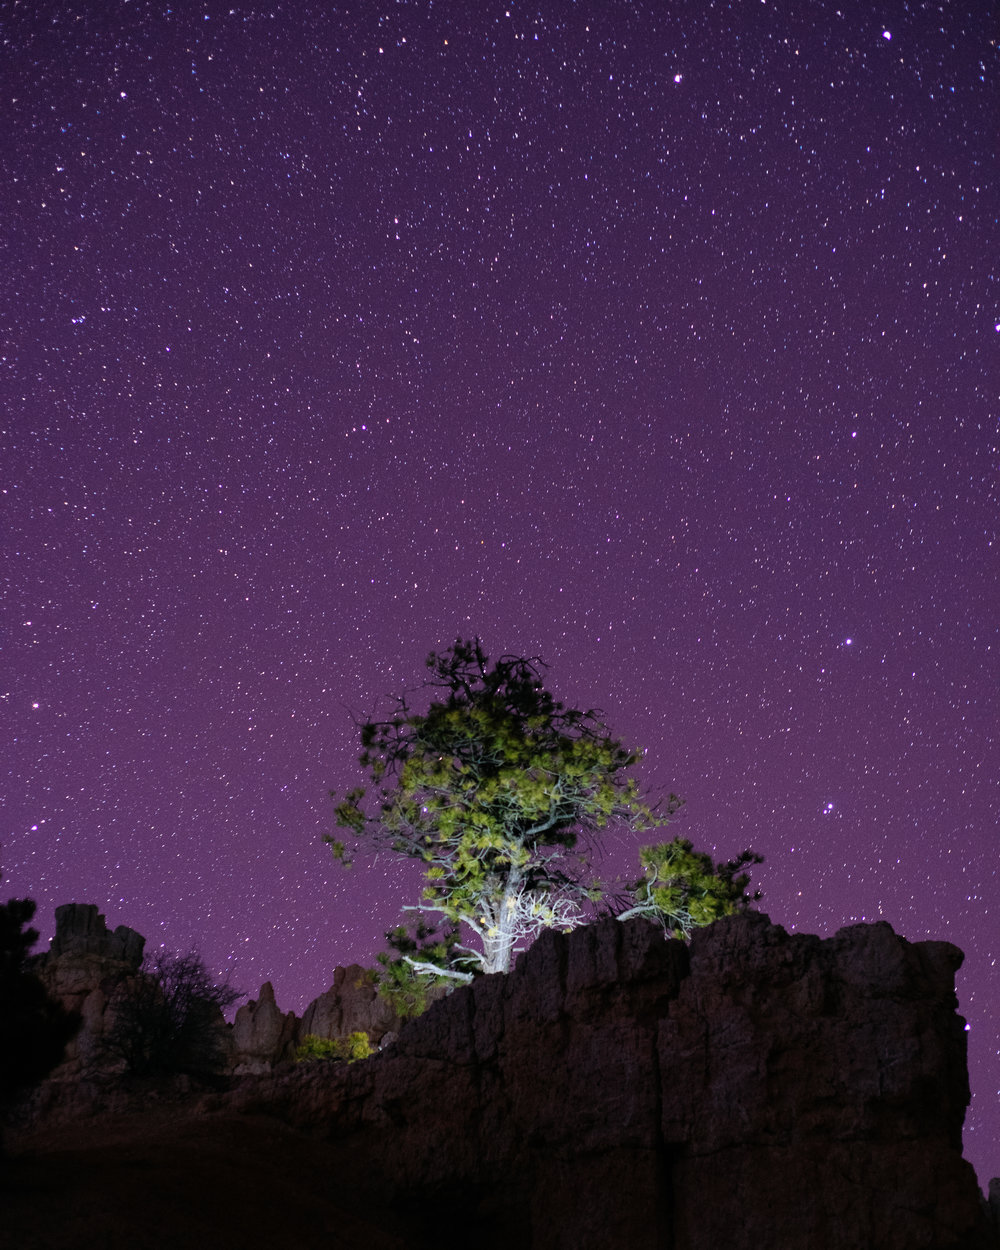 landscapes_for_stonecanyoninn (5 of 8).jpg